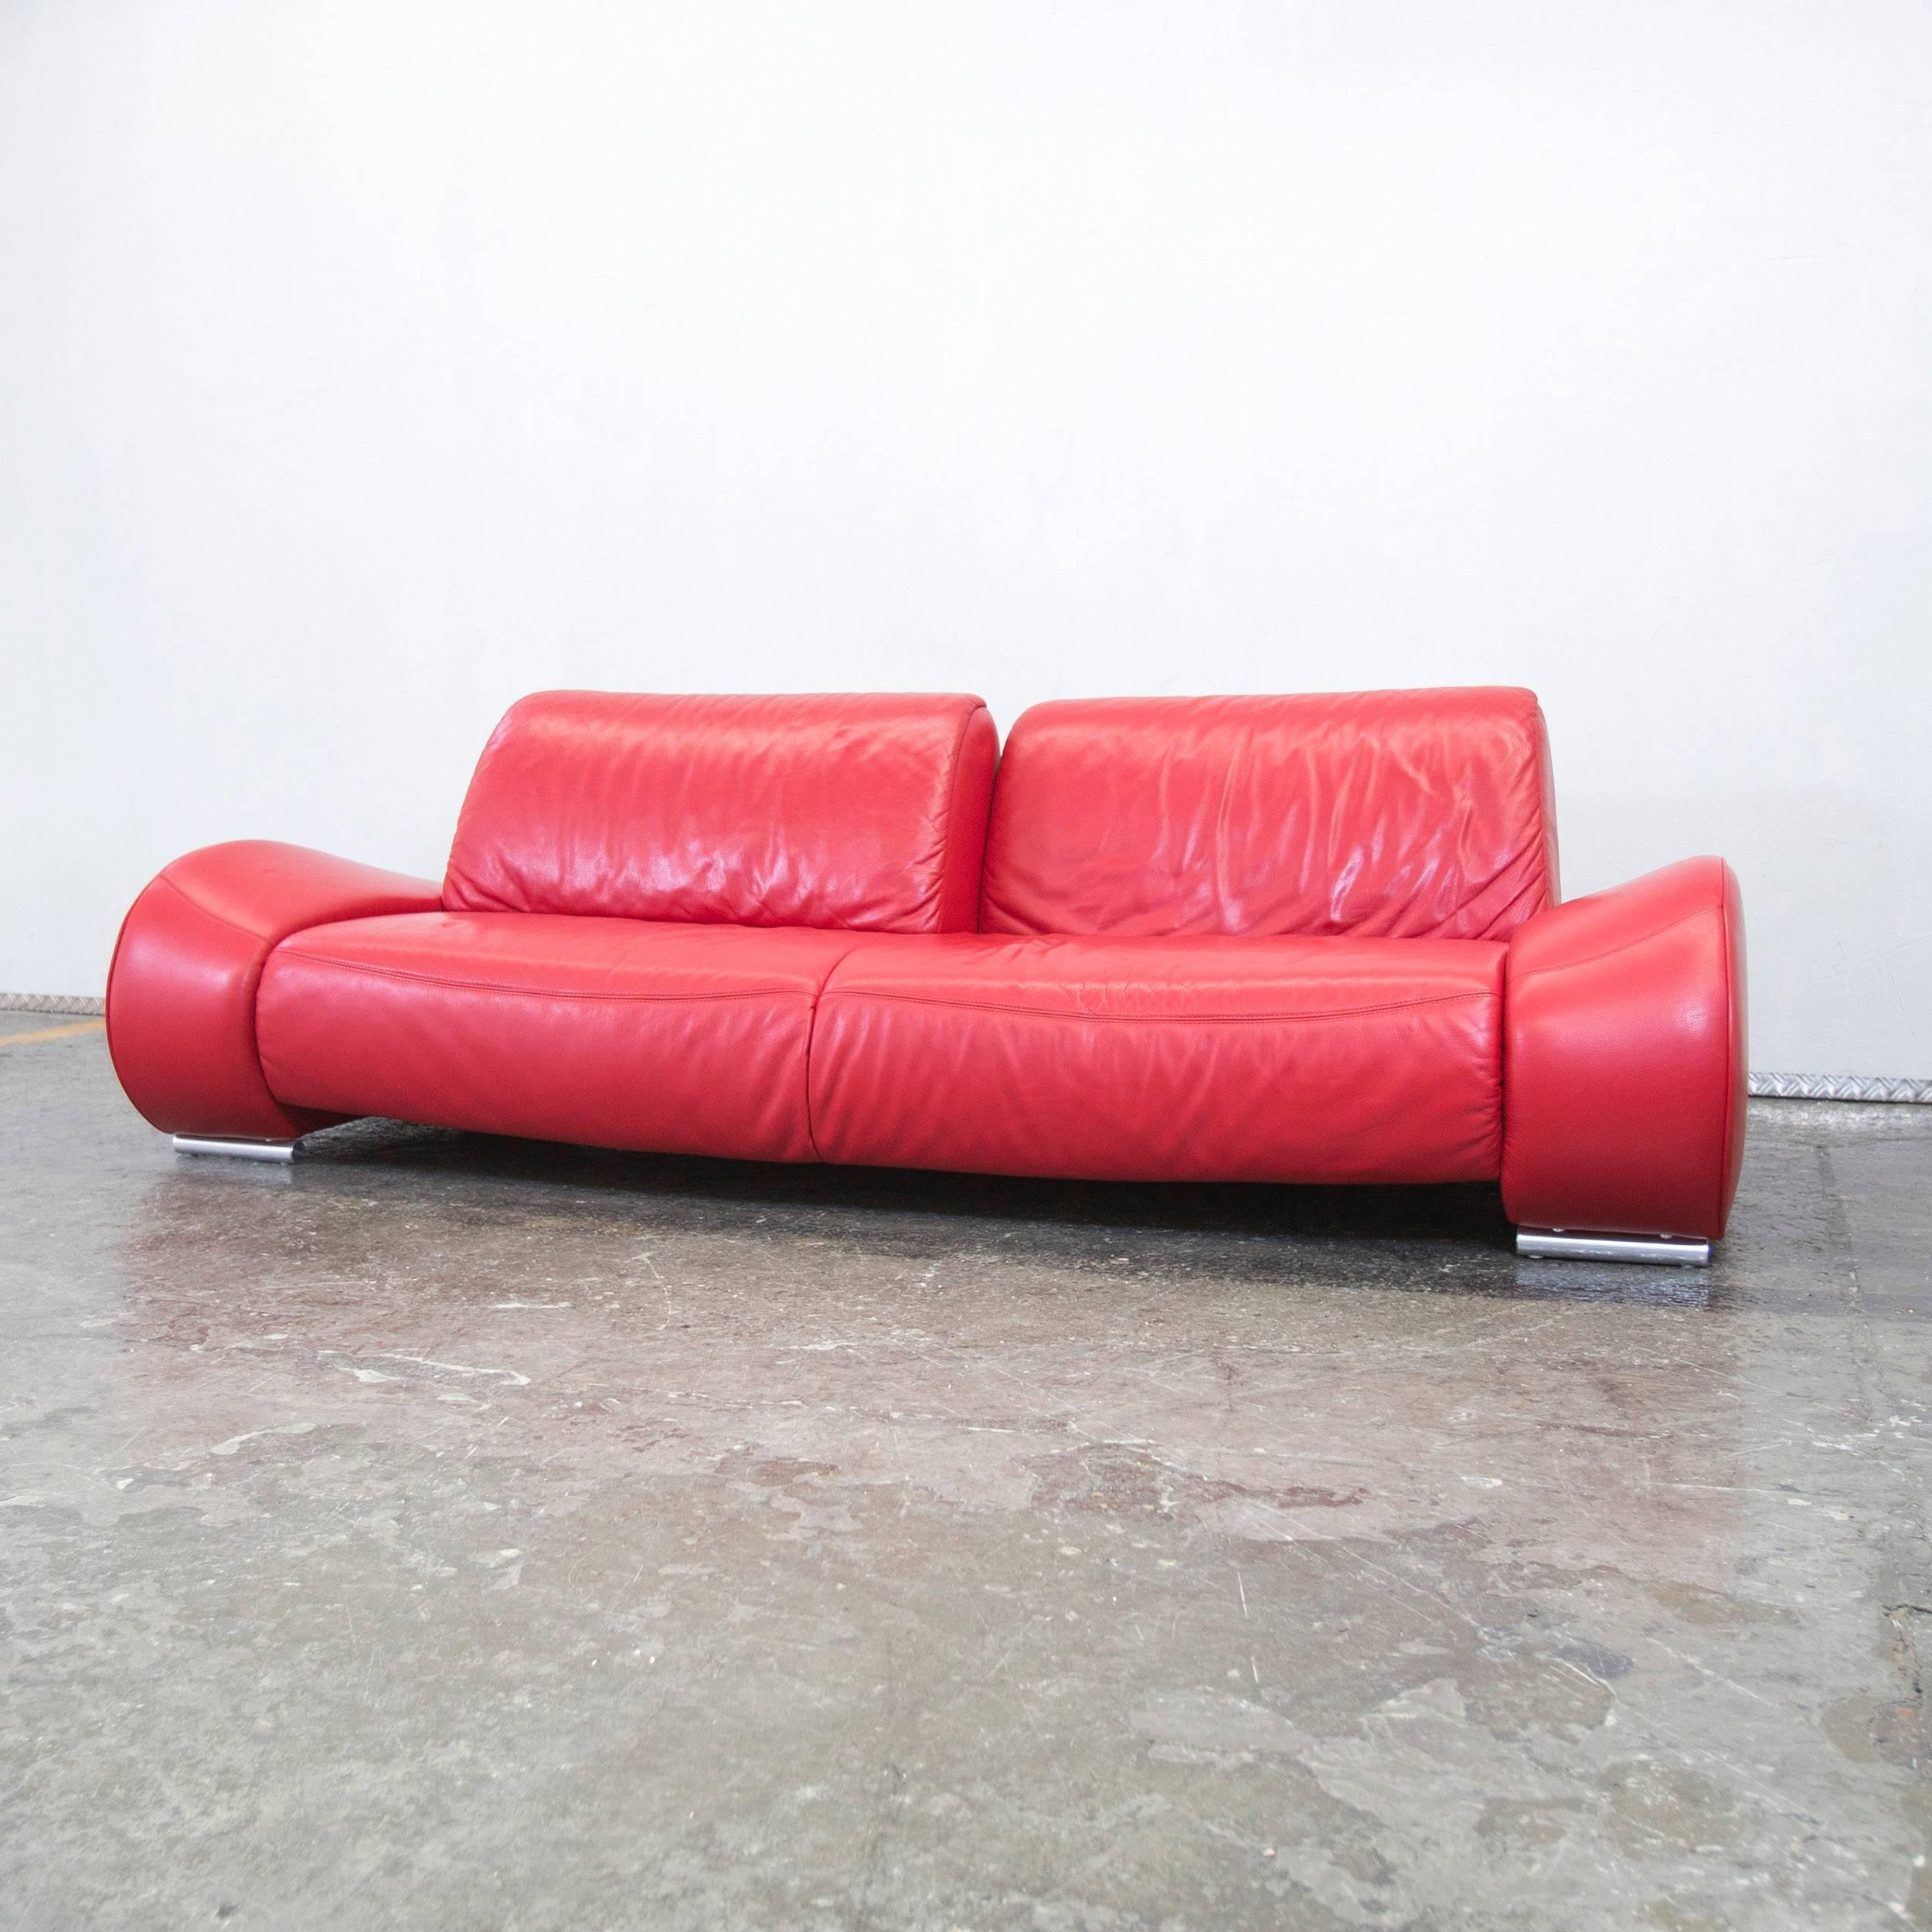 Couch Rot Hummel Designer Leather Sofa Red Three Seat Couch Modern Function